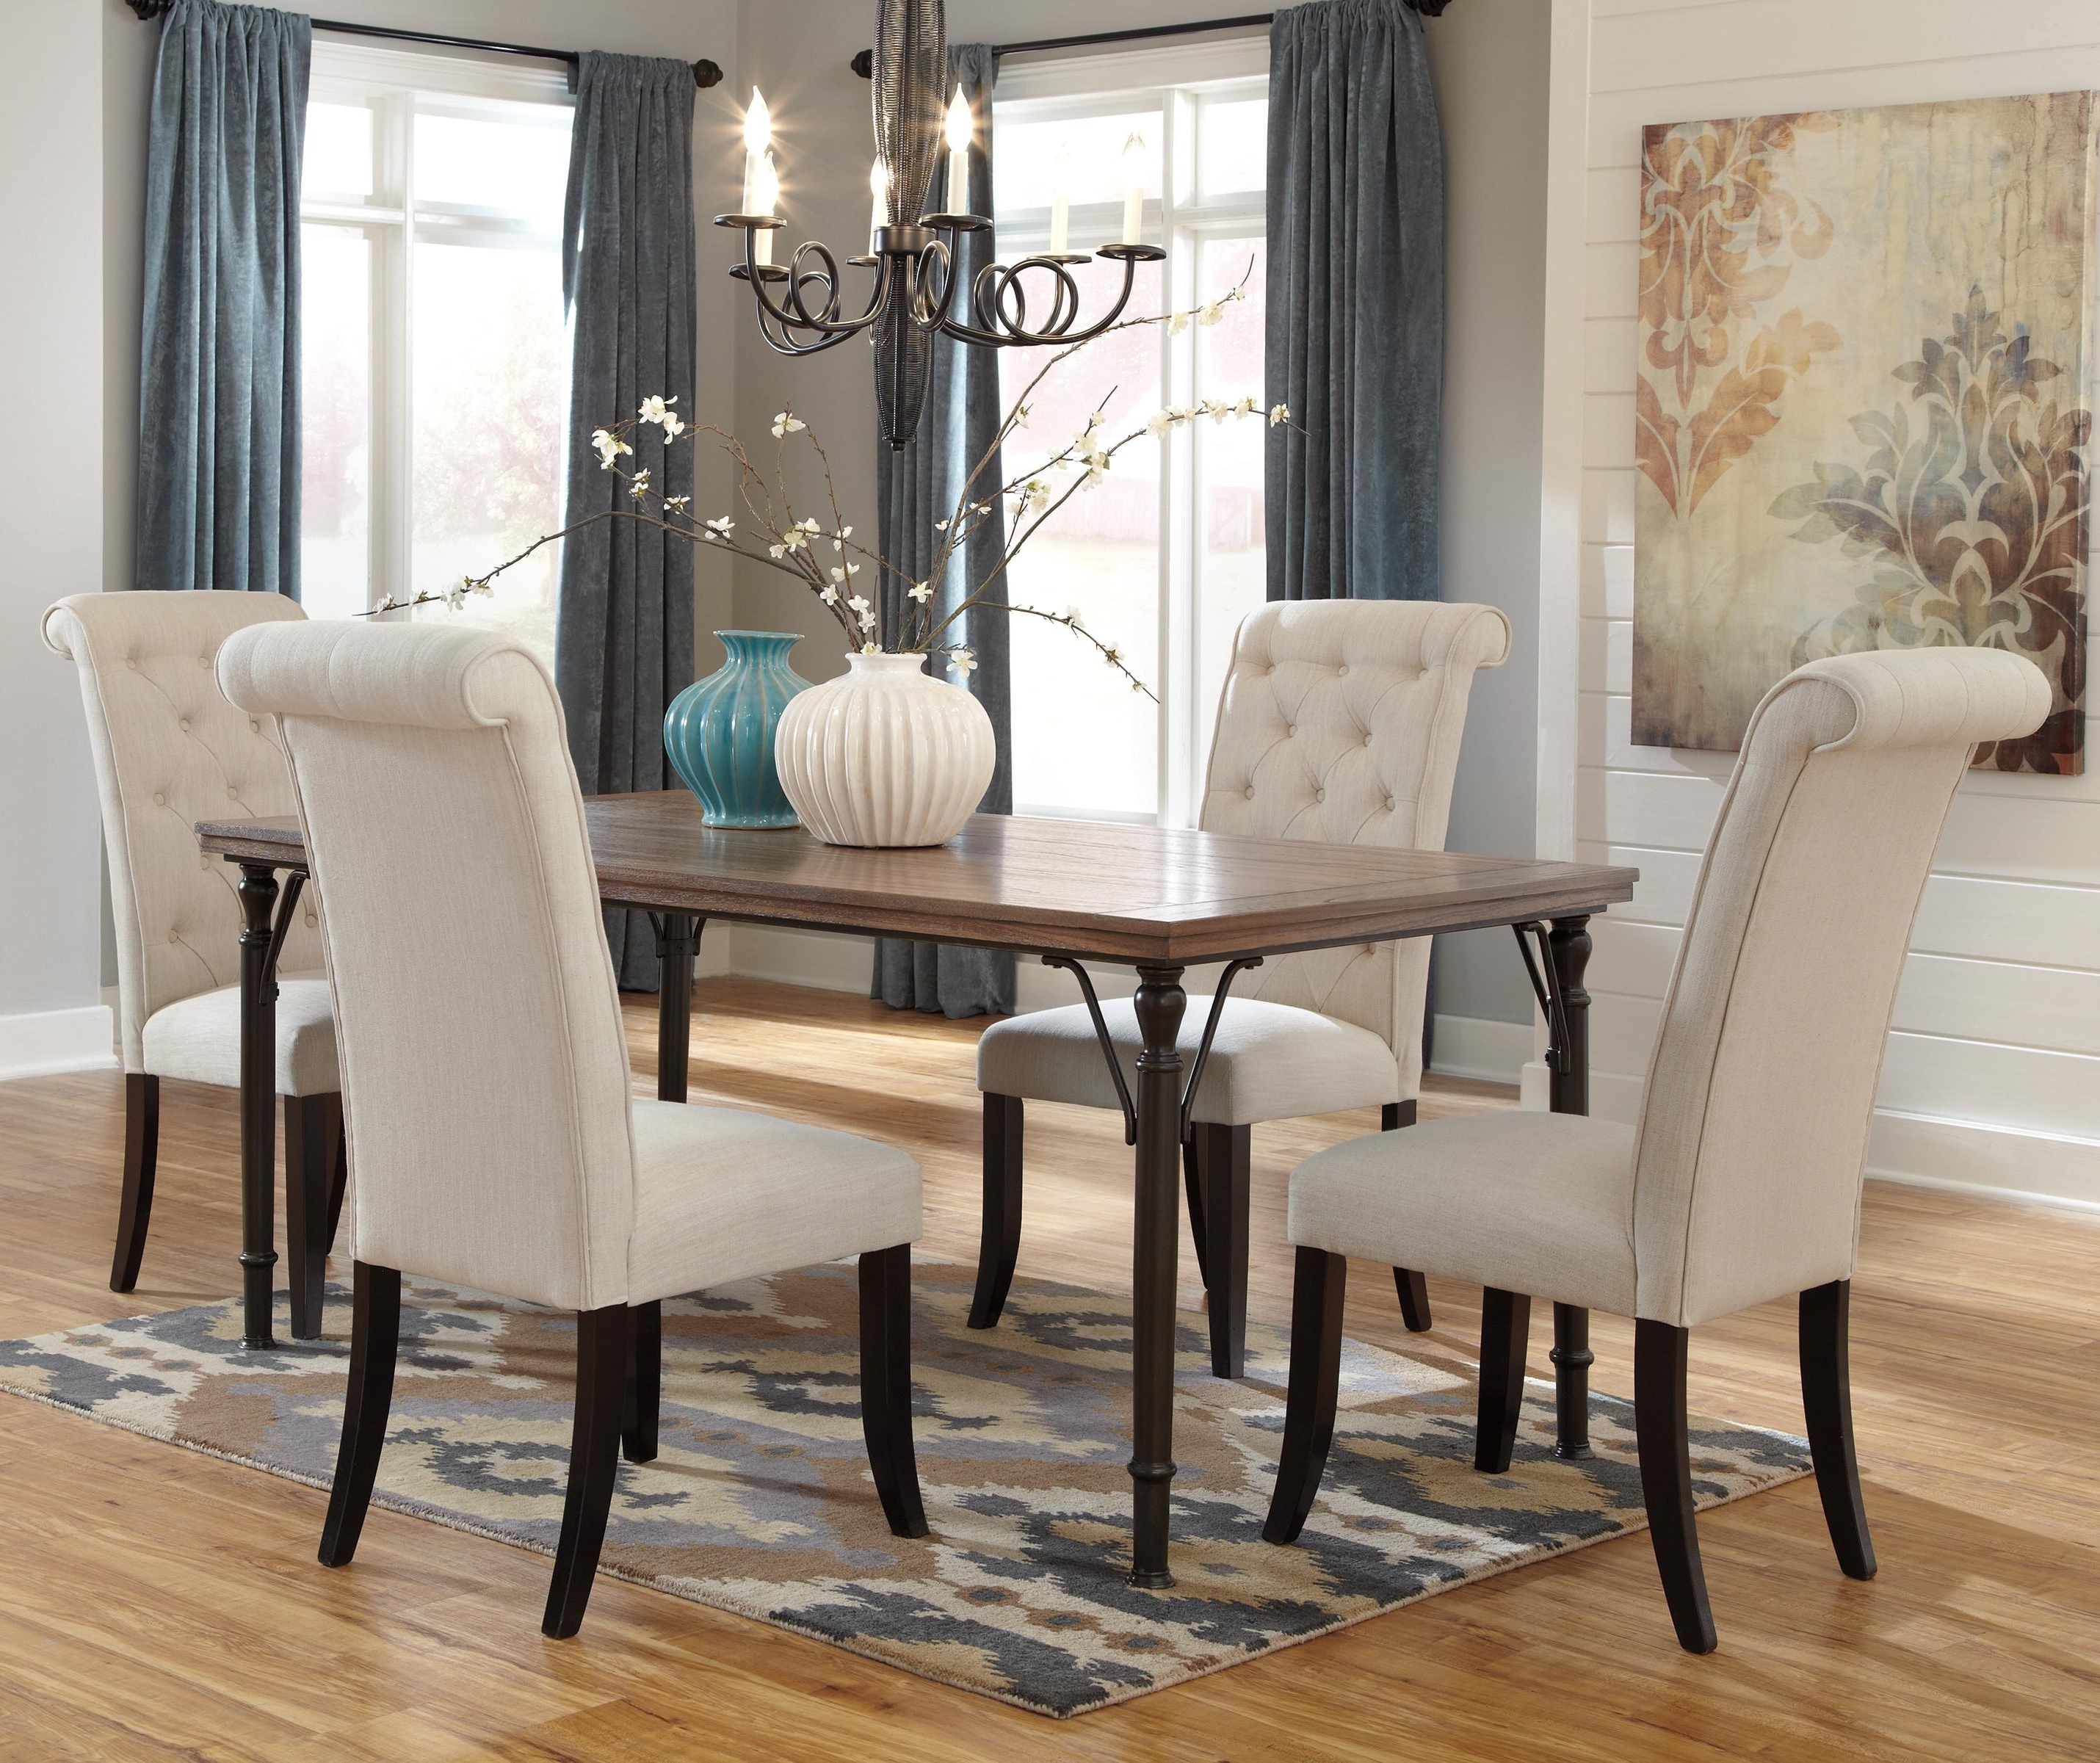 Well Liked 5 Piece Rectangular Dining Room Table Set W/ Wood Top & Metal Legs Pertaining To Rectangular Dining Tables Sets (View 24 of 25)